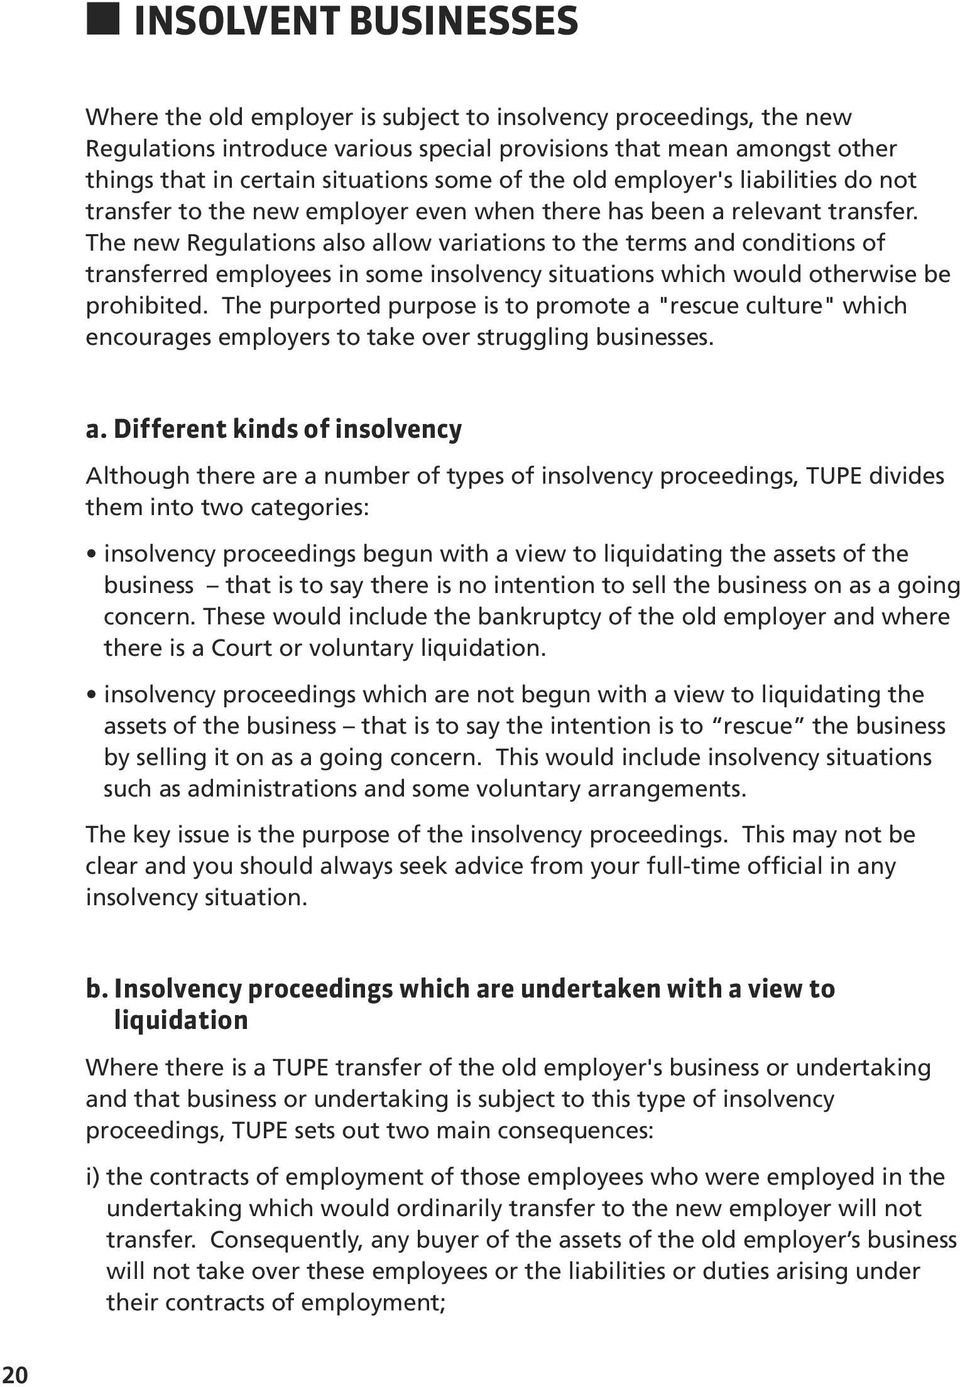 The new Regulations also allow variations to the terms and conditions of transferred employees in some insolvency situations which would otherwise be prohibited.